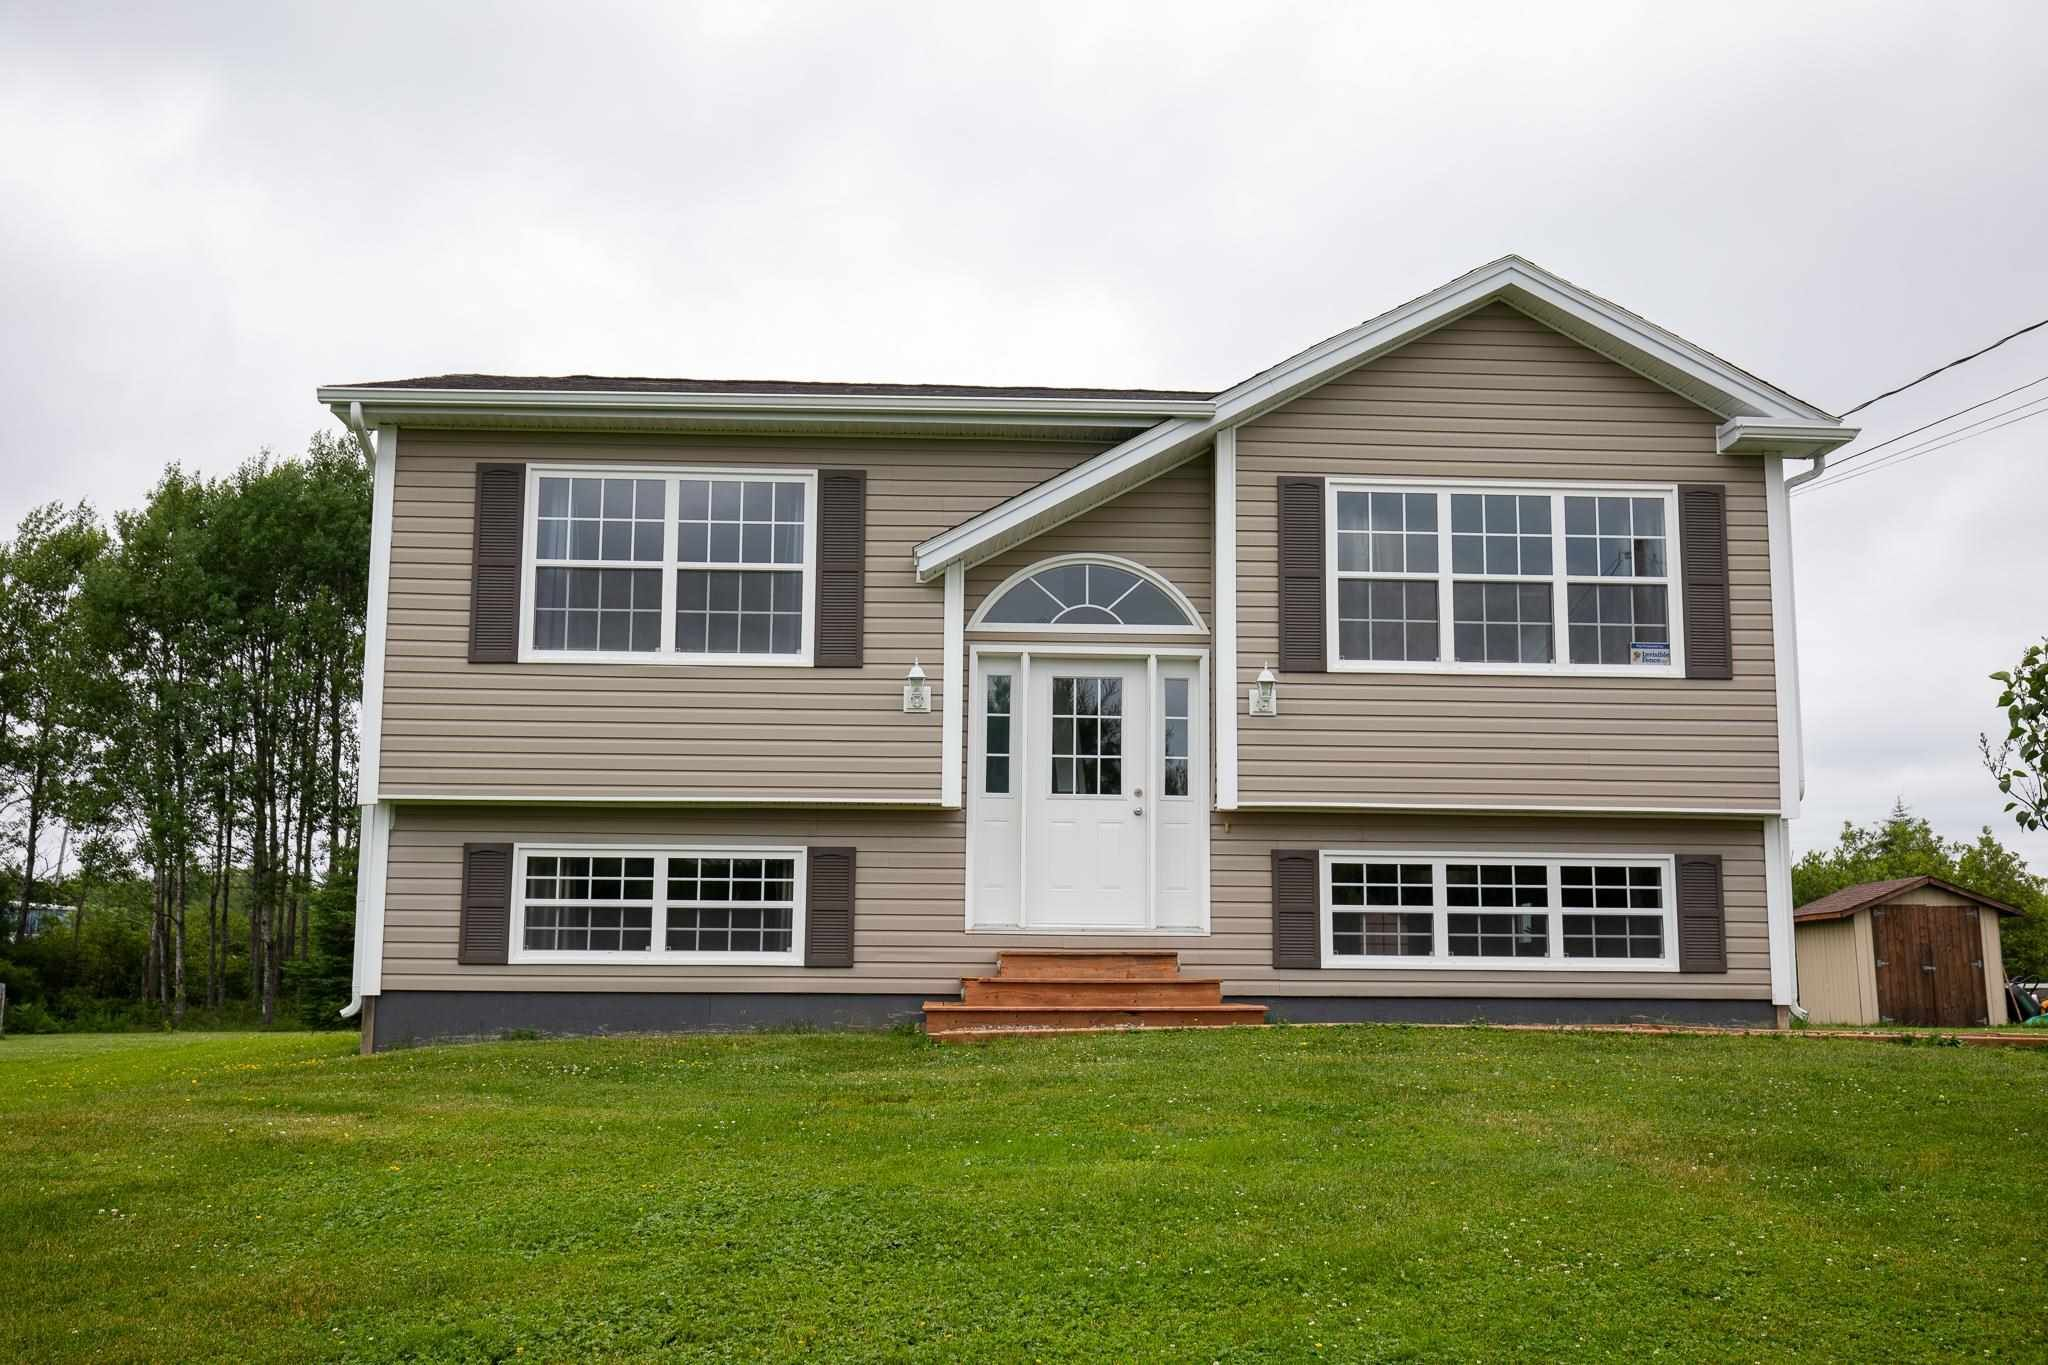 Main Photo: 579 Highway 1 in Mount Uniacke: 105-East Hants/Colchester West Residential for sale (Halifax-Dartmouth)  : MLS®# 202117448